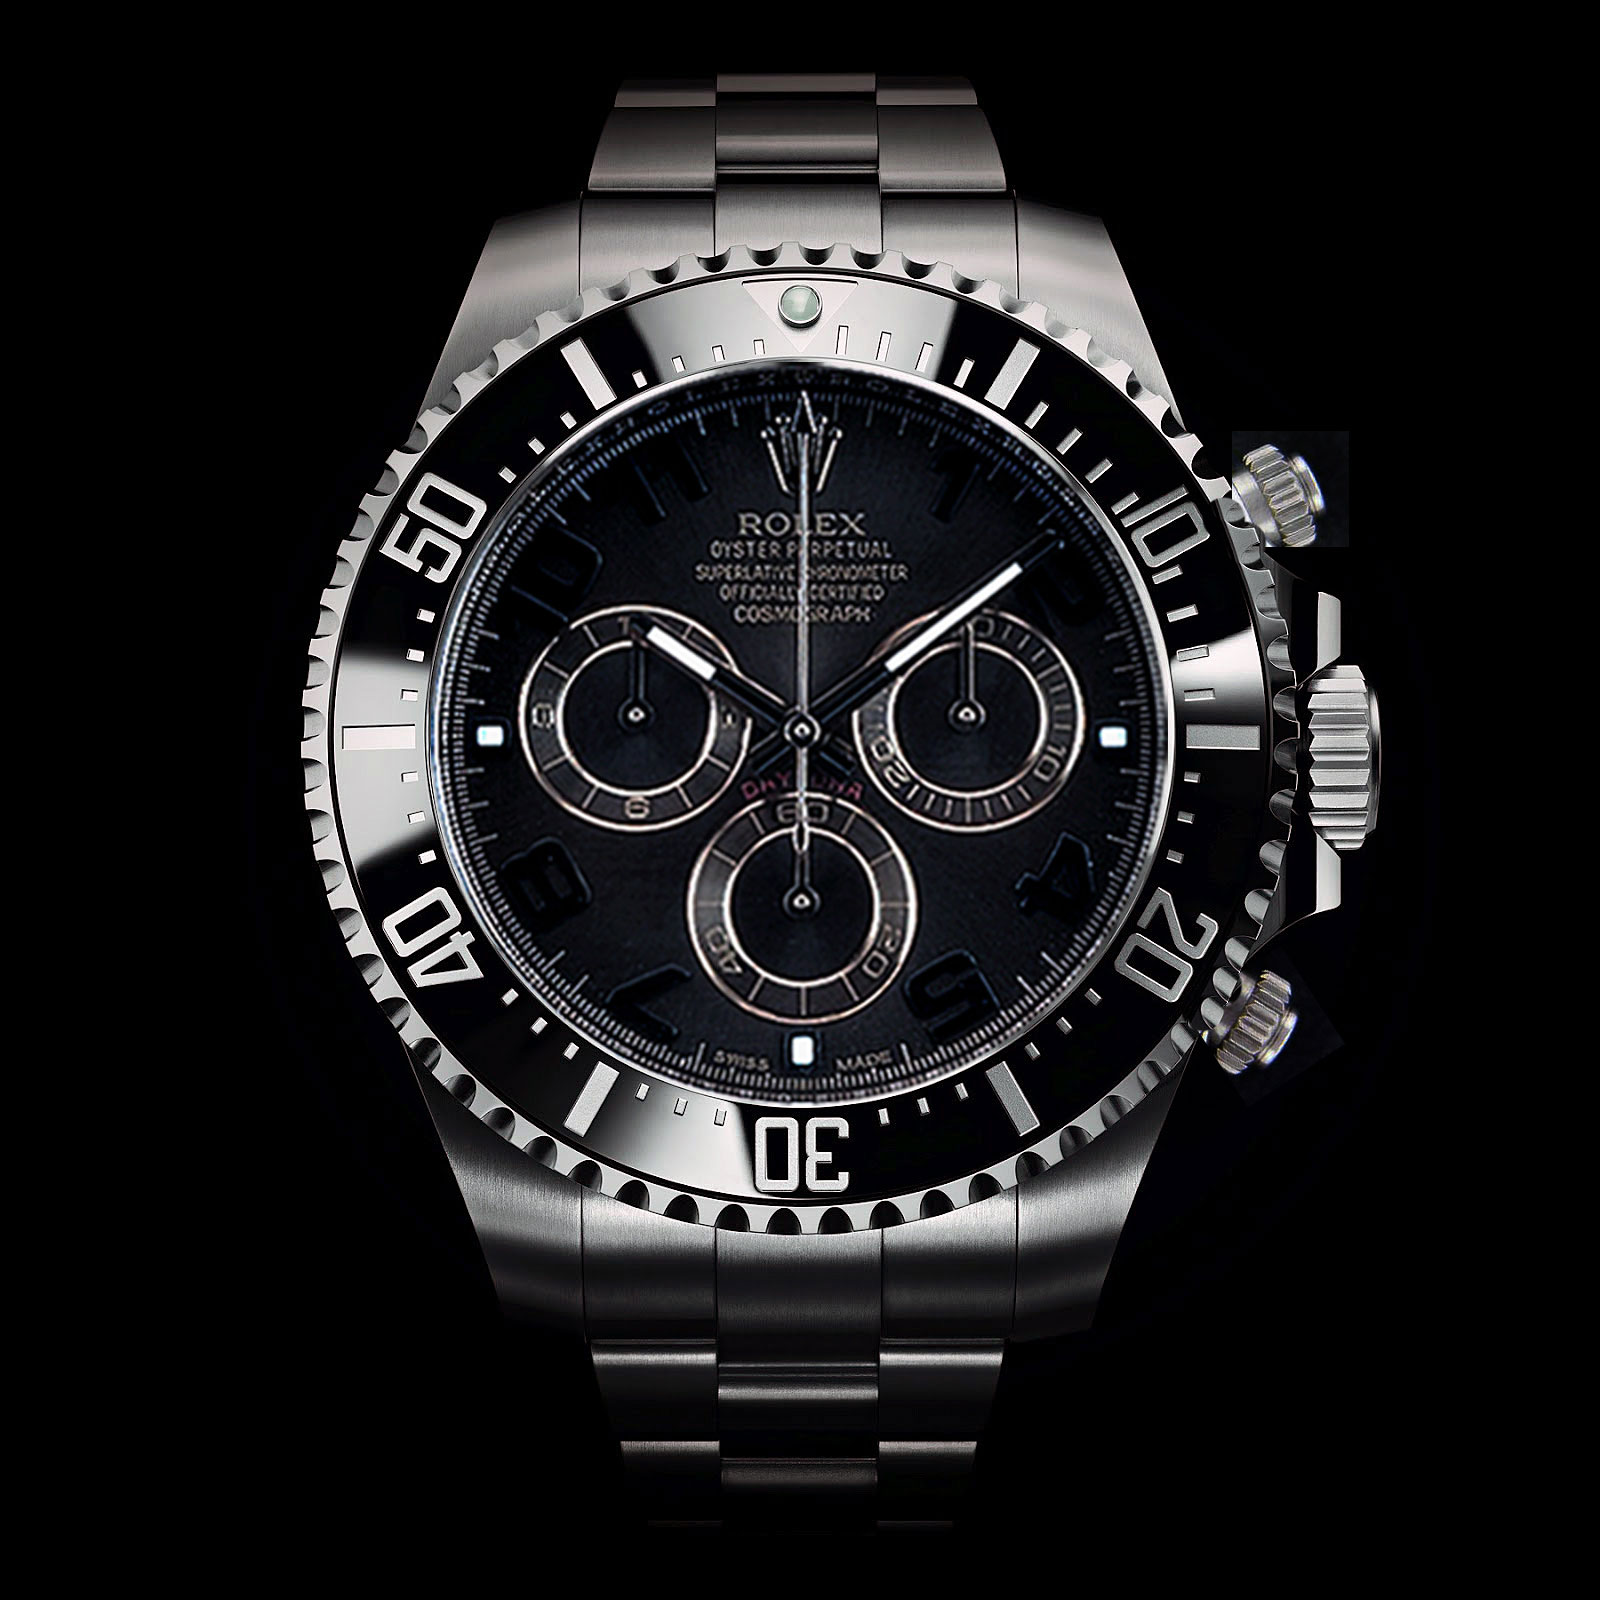 Rolex daytona 2016 price